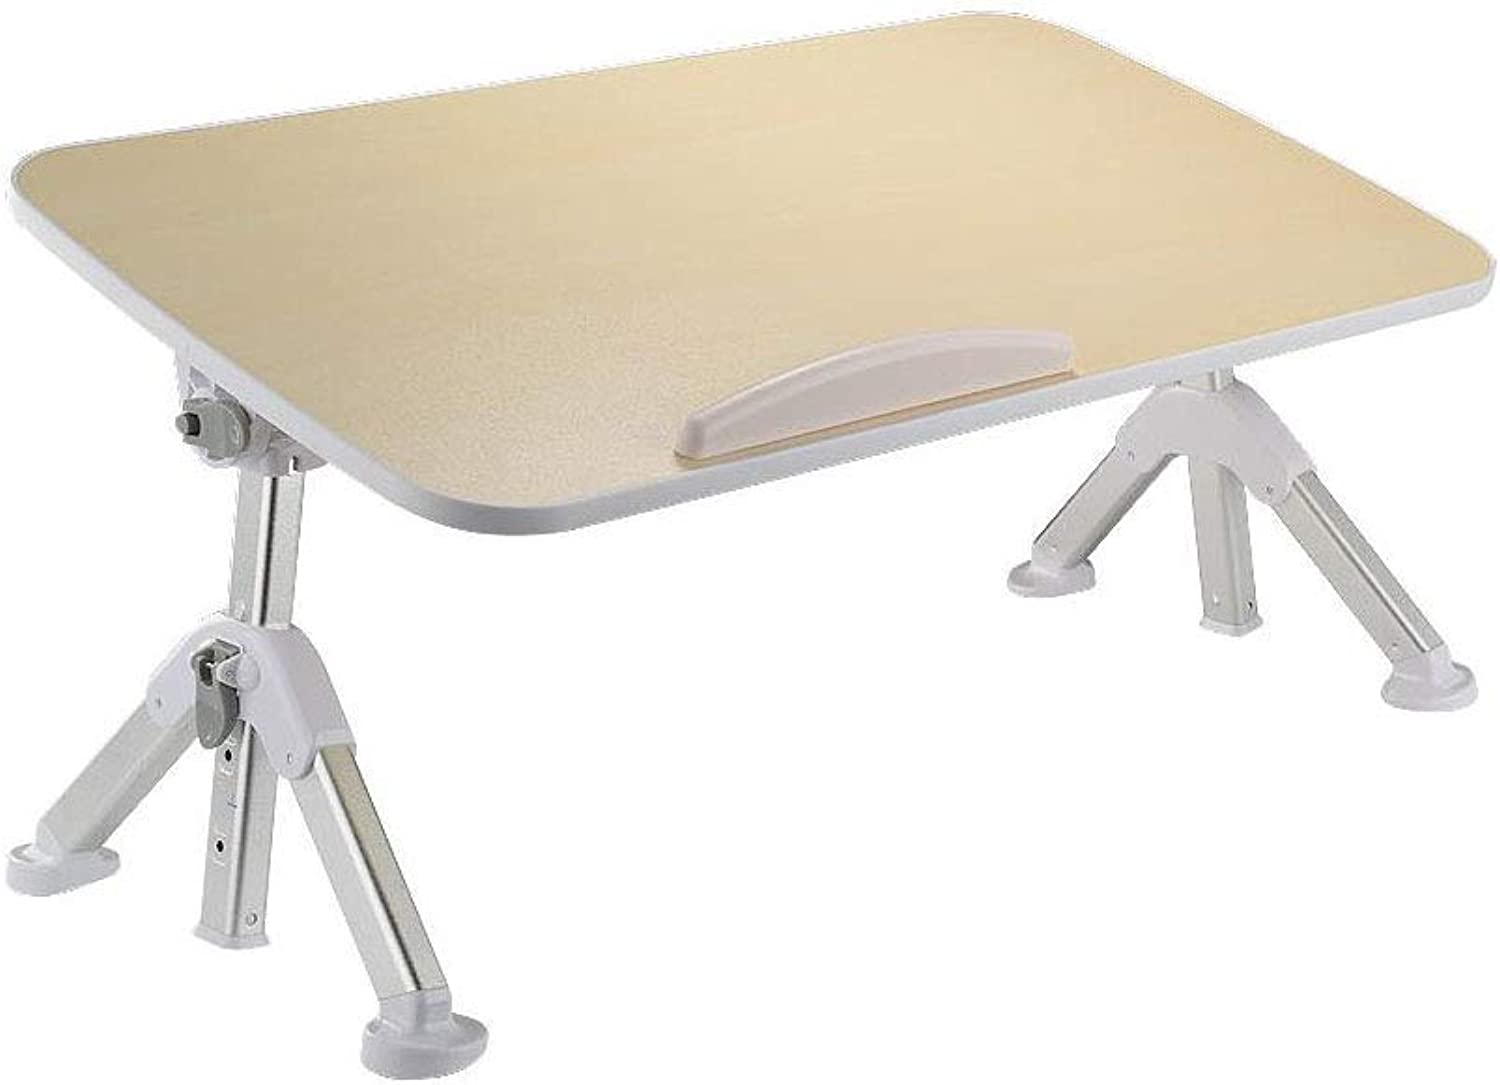 LiTing-Folding Table Simple Computer Desk, Bed, Table, Female College Dormitory, Foldable Table, Lazy Table (Size   52x30x33cm)